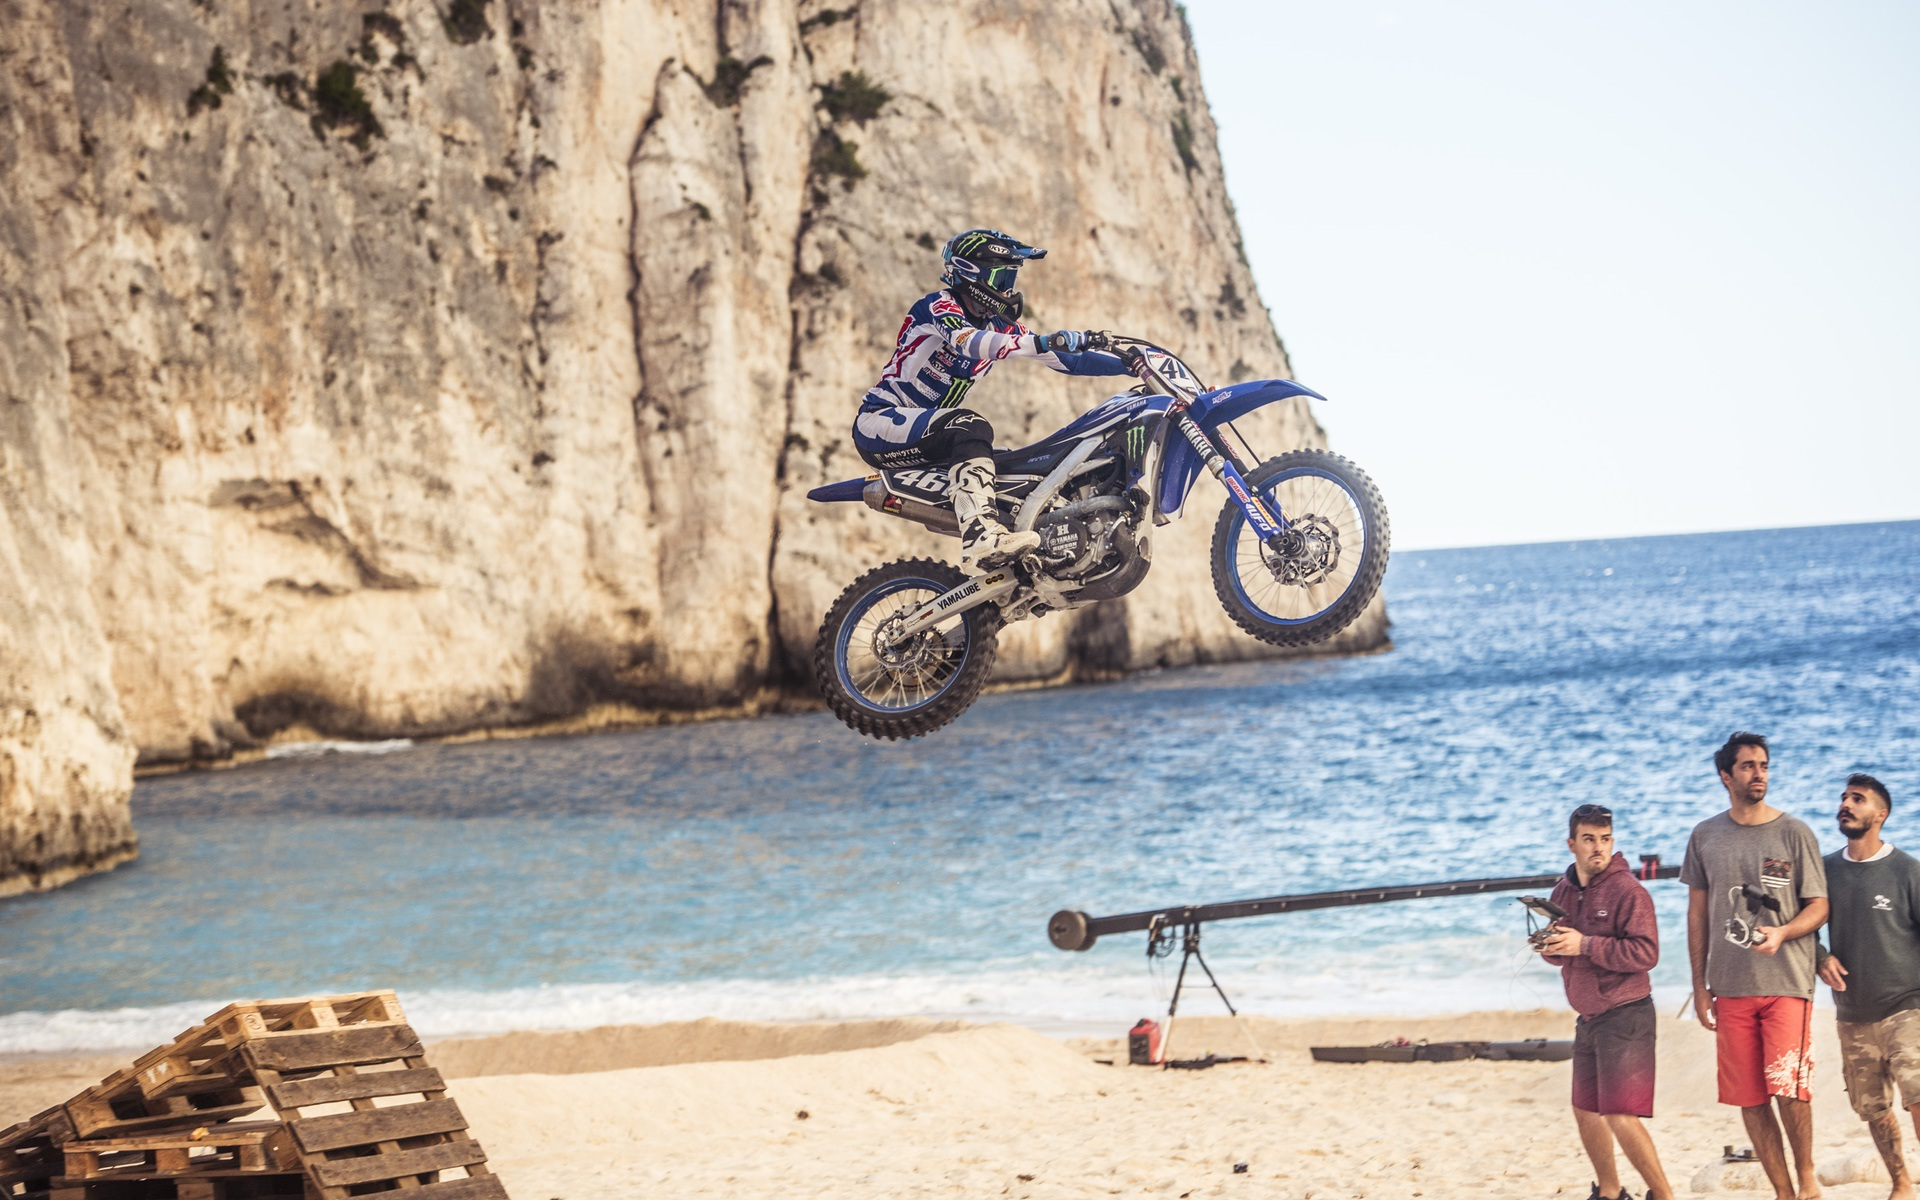 Romain_Febvre_Monster_Energy_Shipwreck_0065